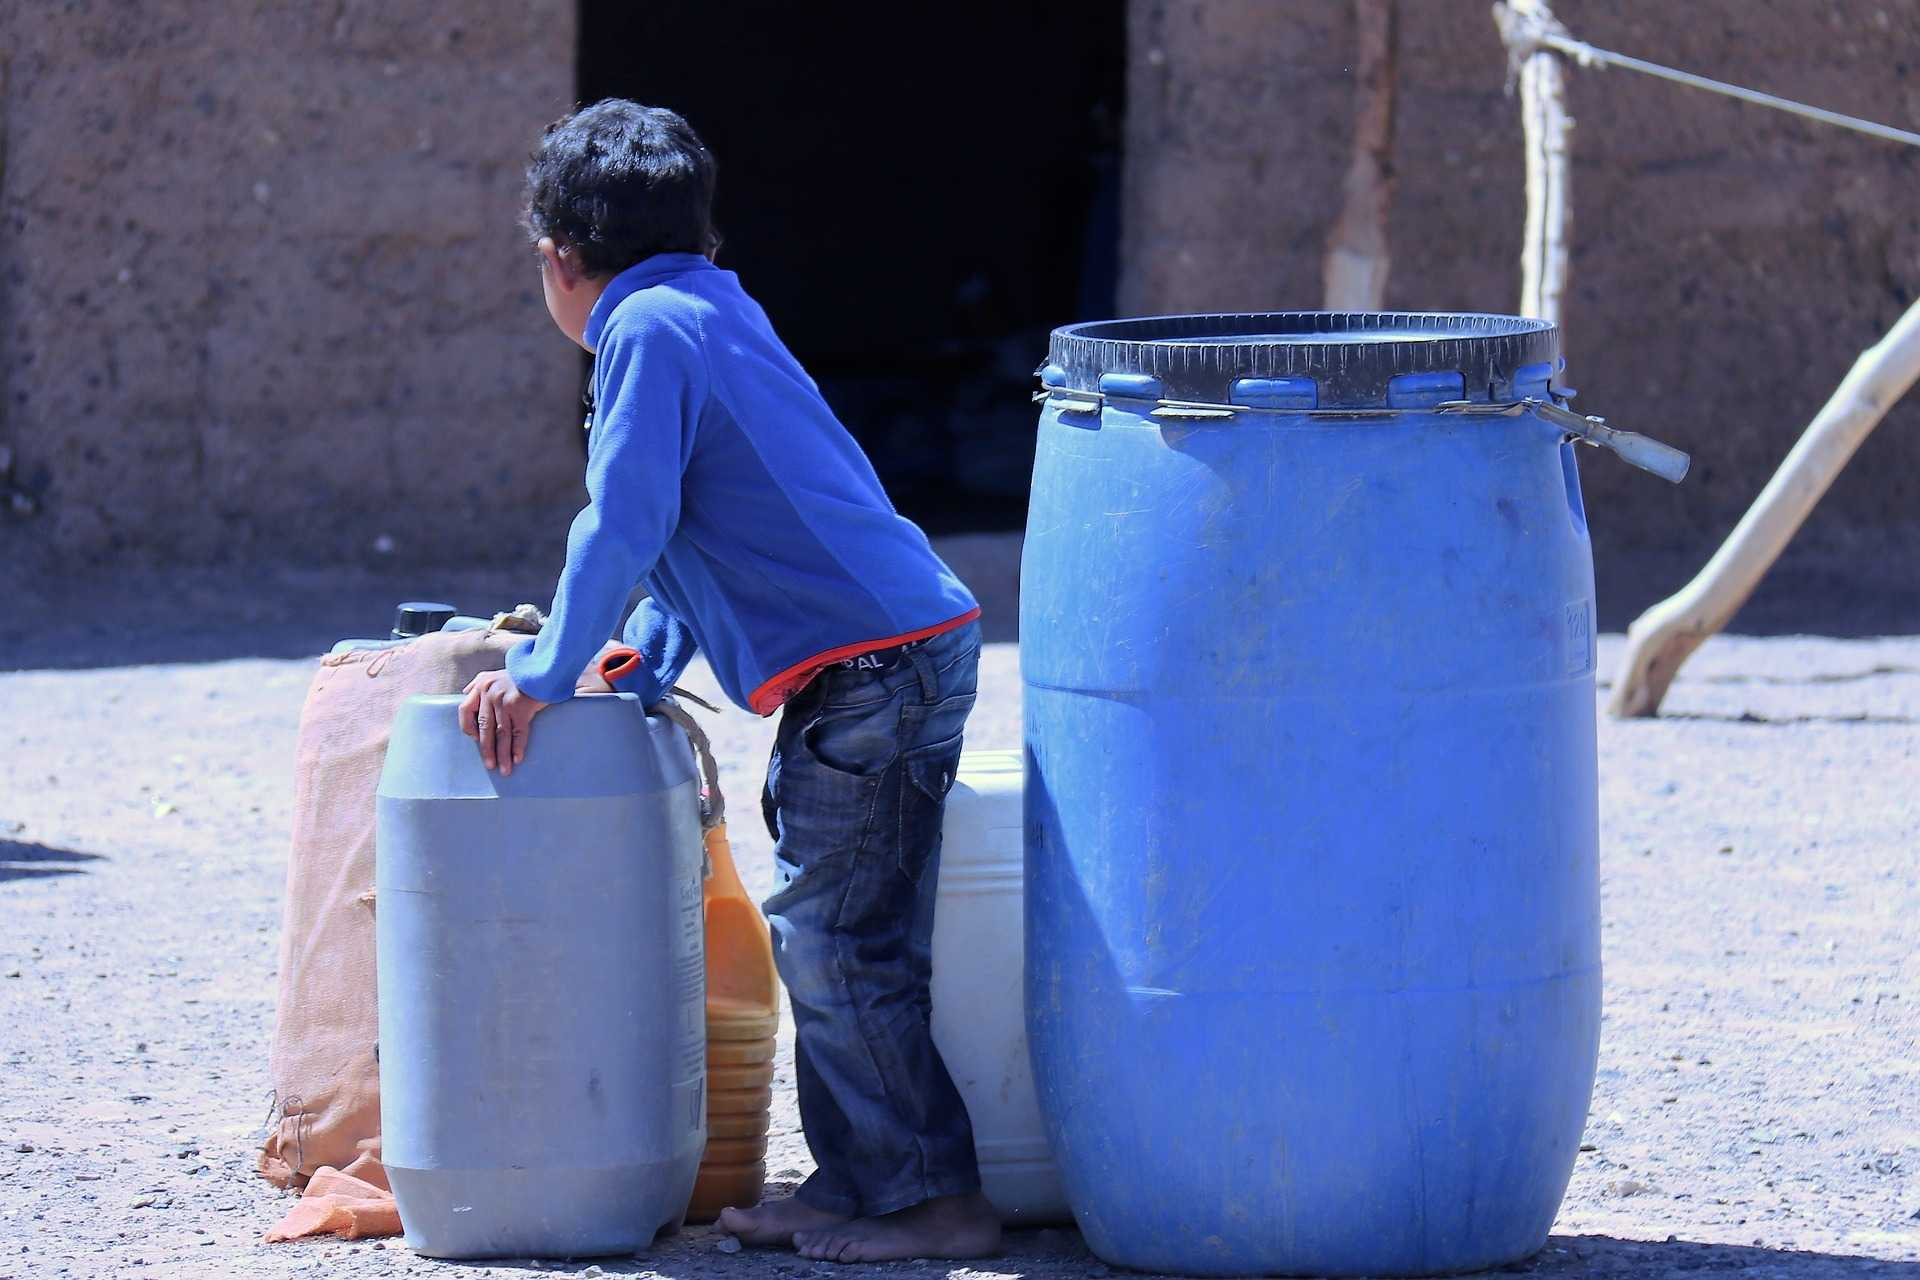 The Governments' Responsibility to Solve the Poor Water and Sanitation Issue